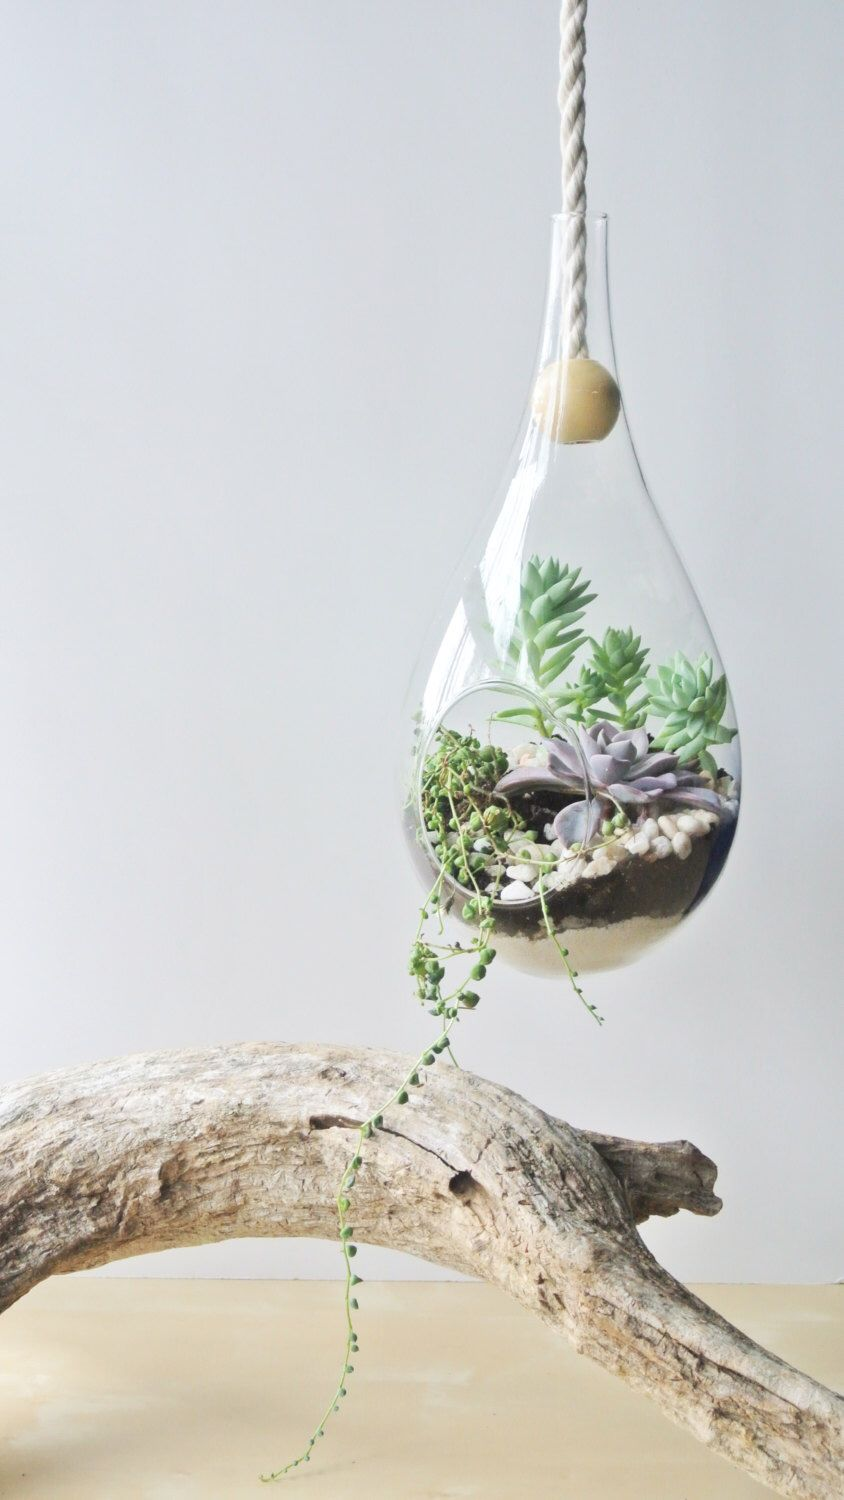 Pin By Peiyu Lee On Hanging Plants Pinterest Plants Terrarium